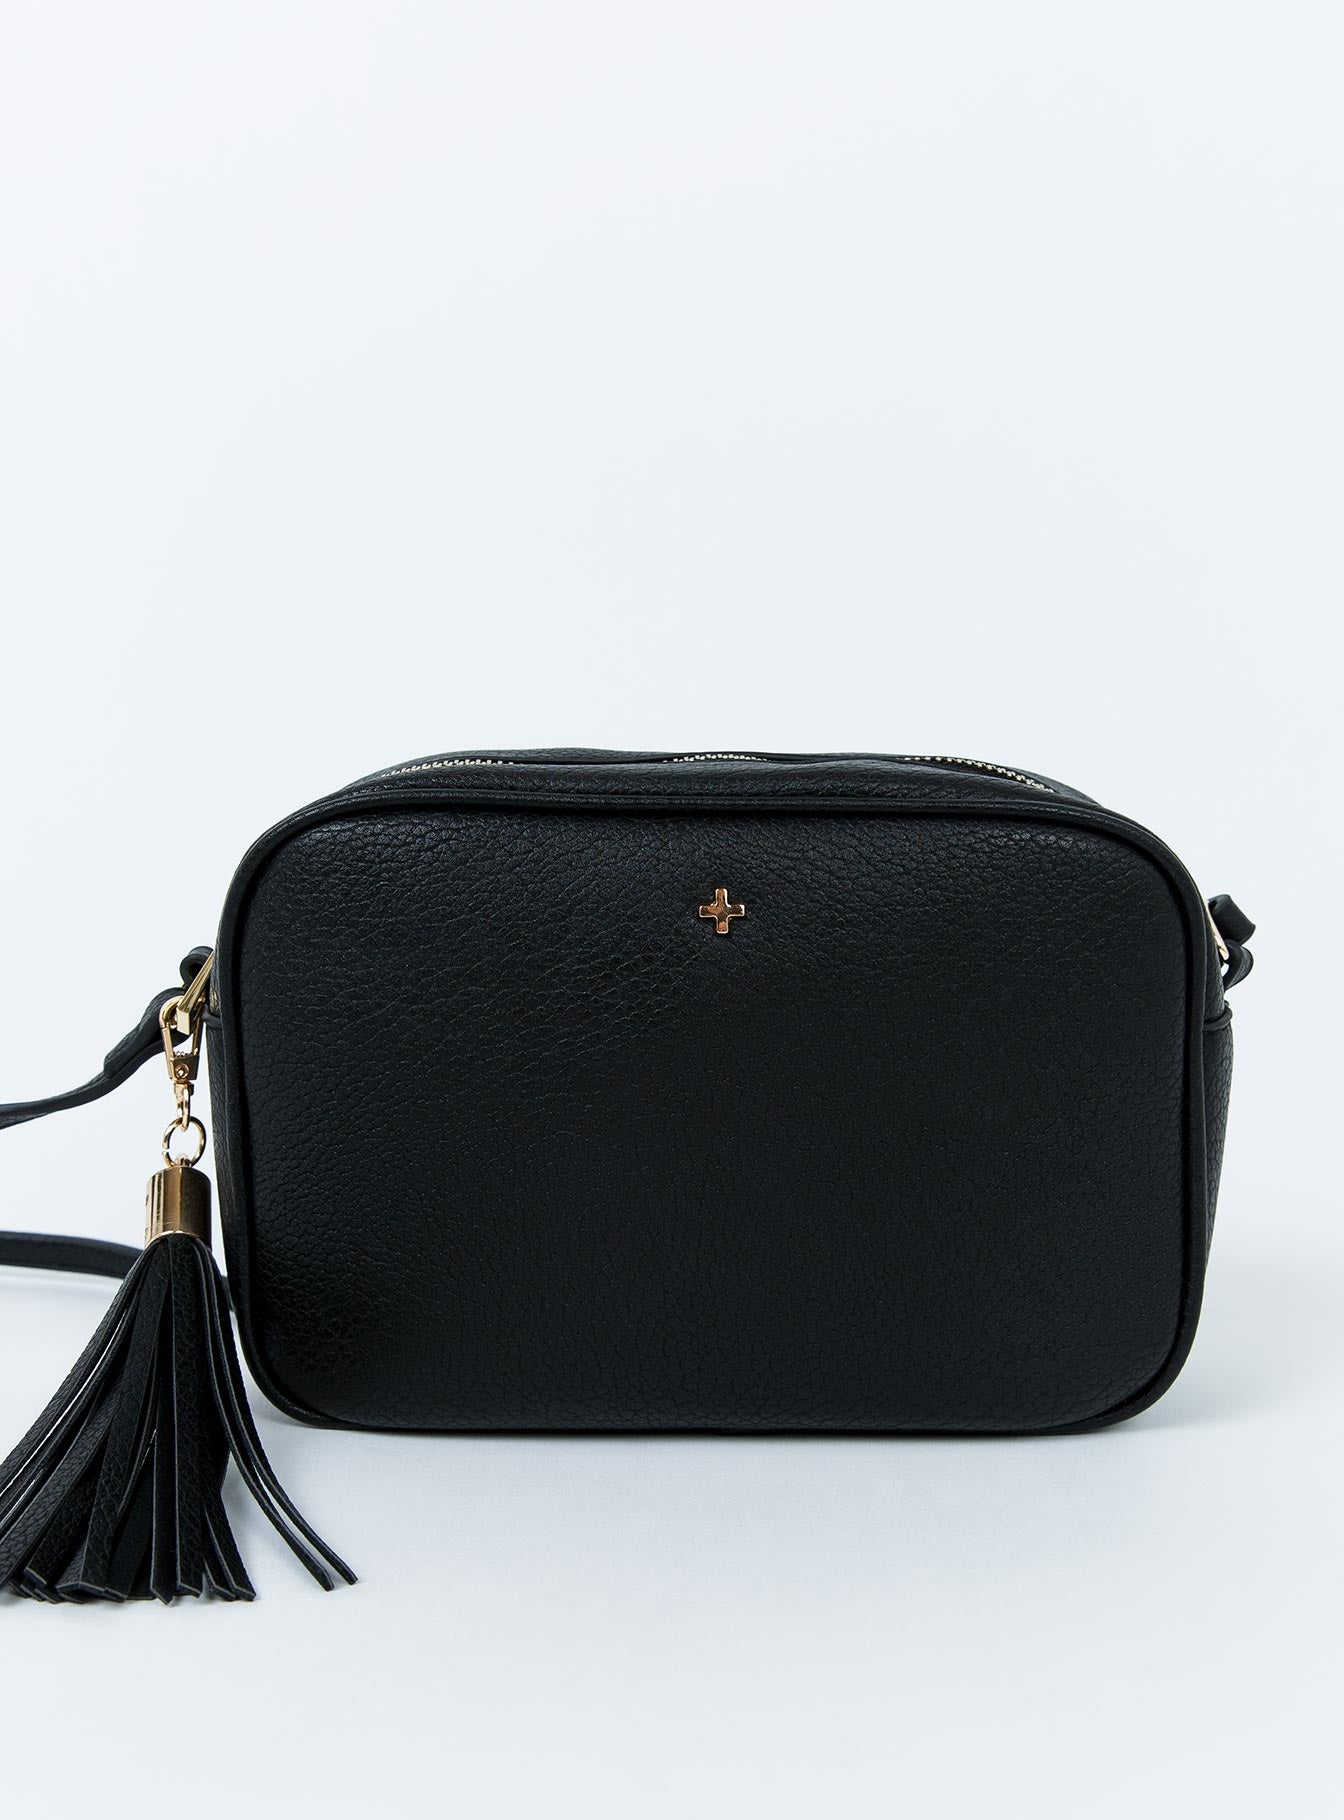 Peta & Jain Gracie Shoulder Bag Black